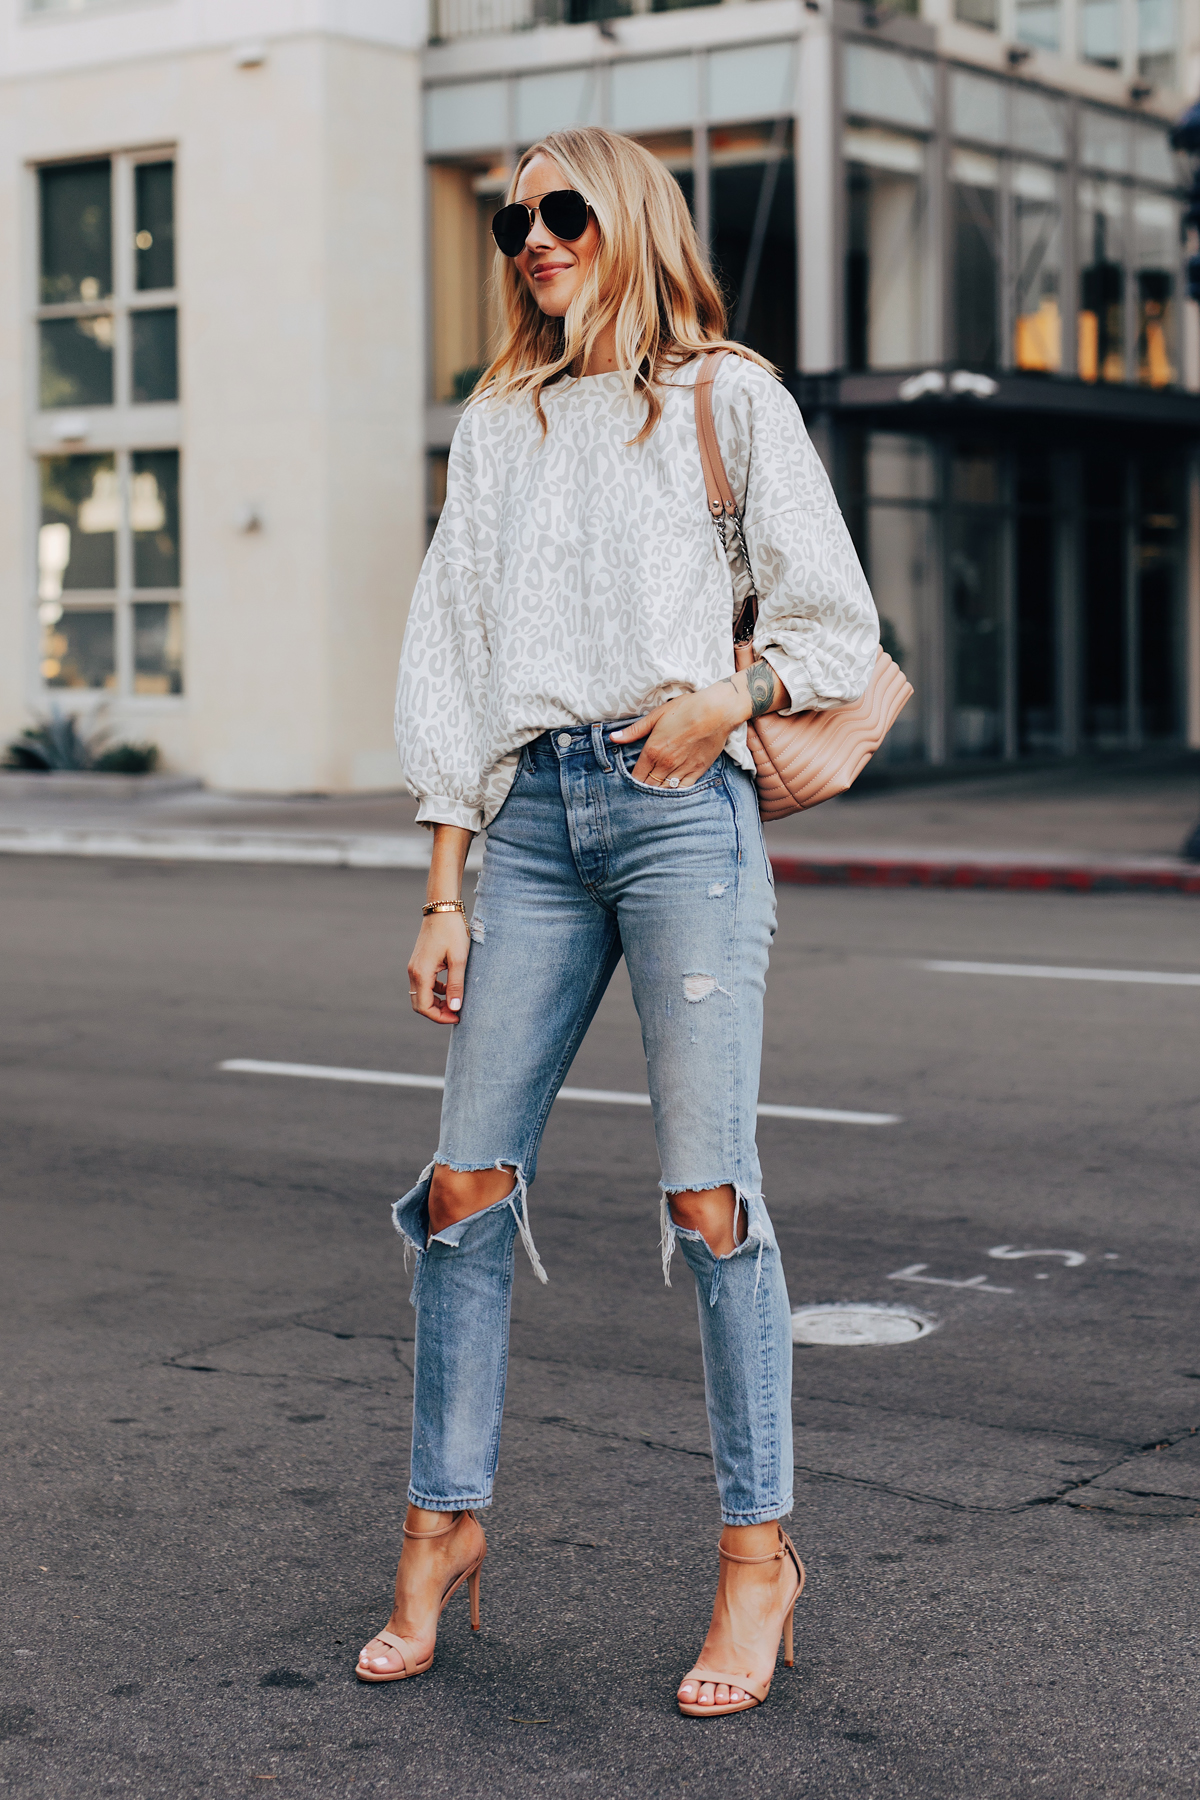 Fashion Jackson Wearing Rebecca Minkoff Leopard Sweatshirt Ripped Jeans Tan Ankle Strap Heeled Sandals Aviator Sunglasses Rebecca Minkoff MAB Quilted Satchel Blush 1